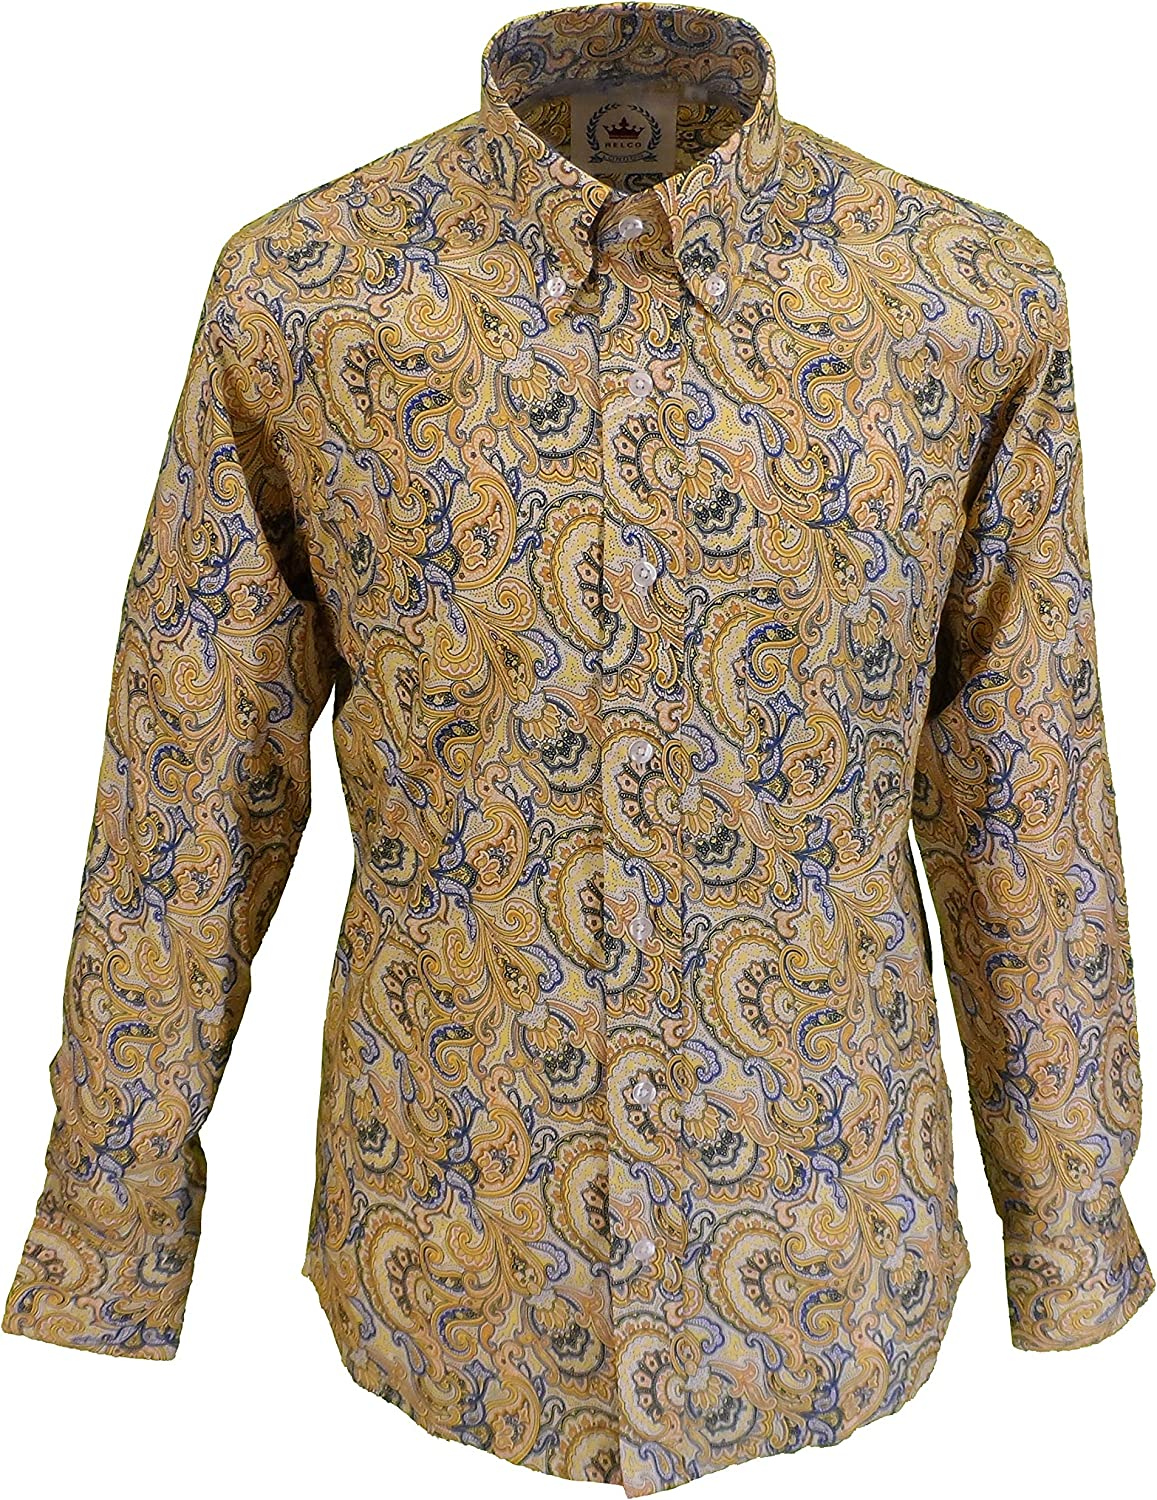 1960s Mens Shirts | 60s Mod Shirts, Hippie Shirts Relco Mens Retro Mod Paisley Shirt £34.99 AT vintagedancer.com